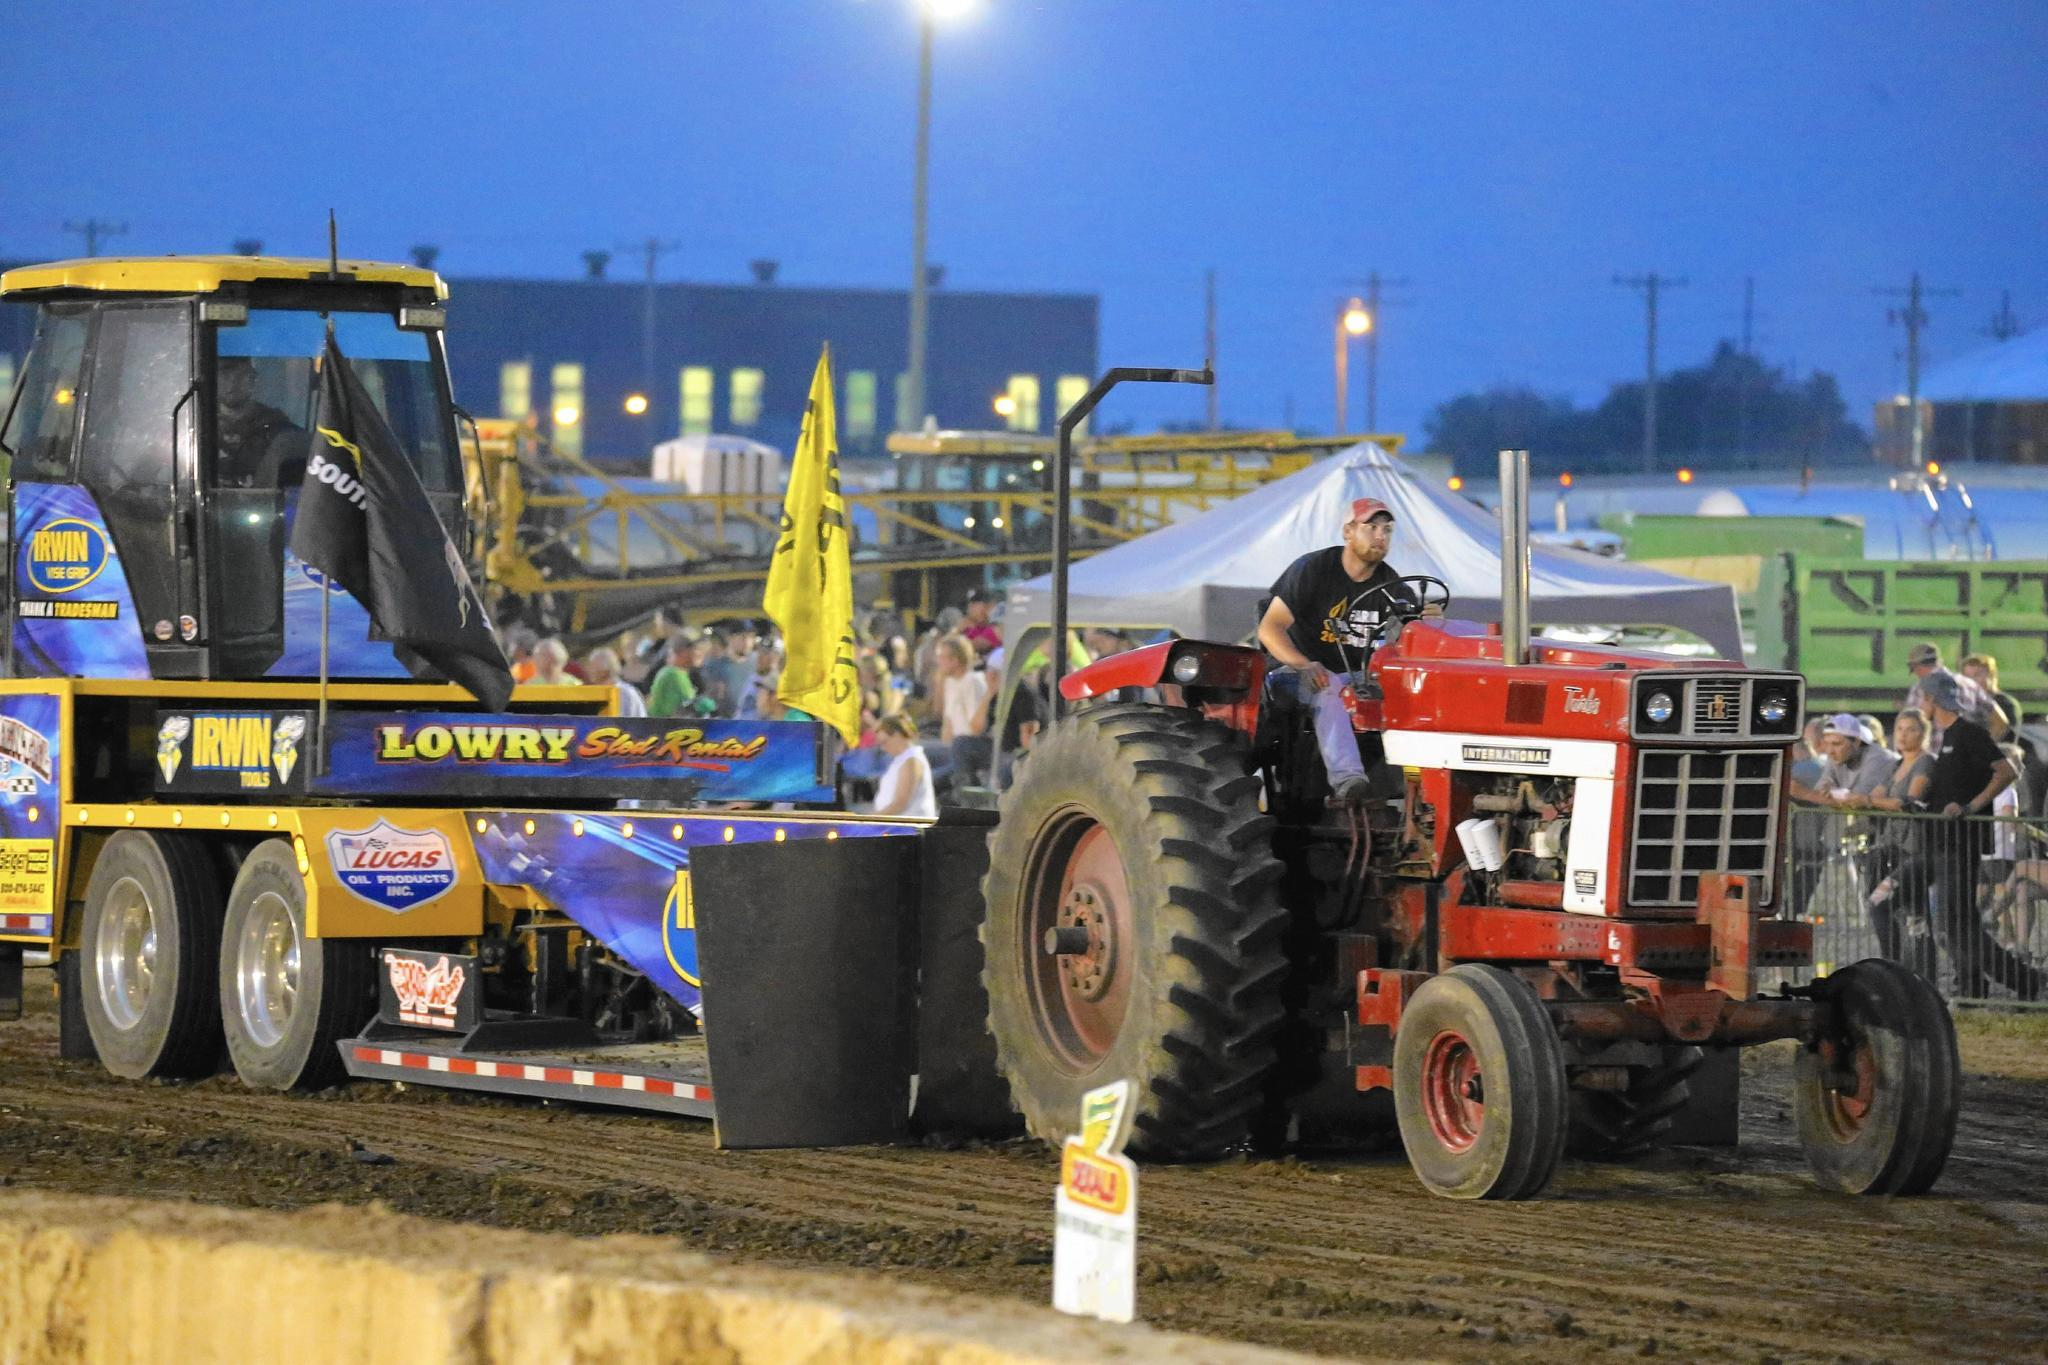 Super Stock Tractor Pulling Engines : Truck tractor pull returns to expo center in valparaiso